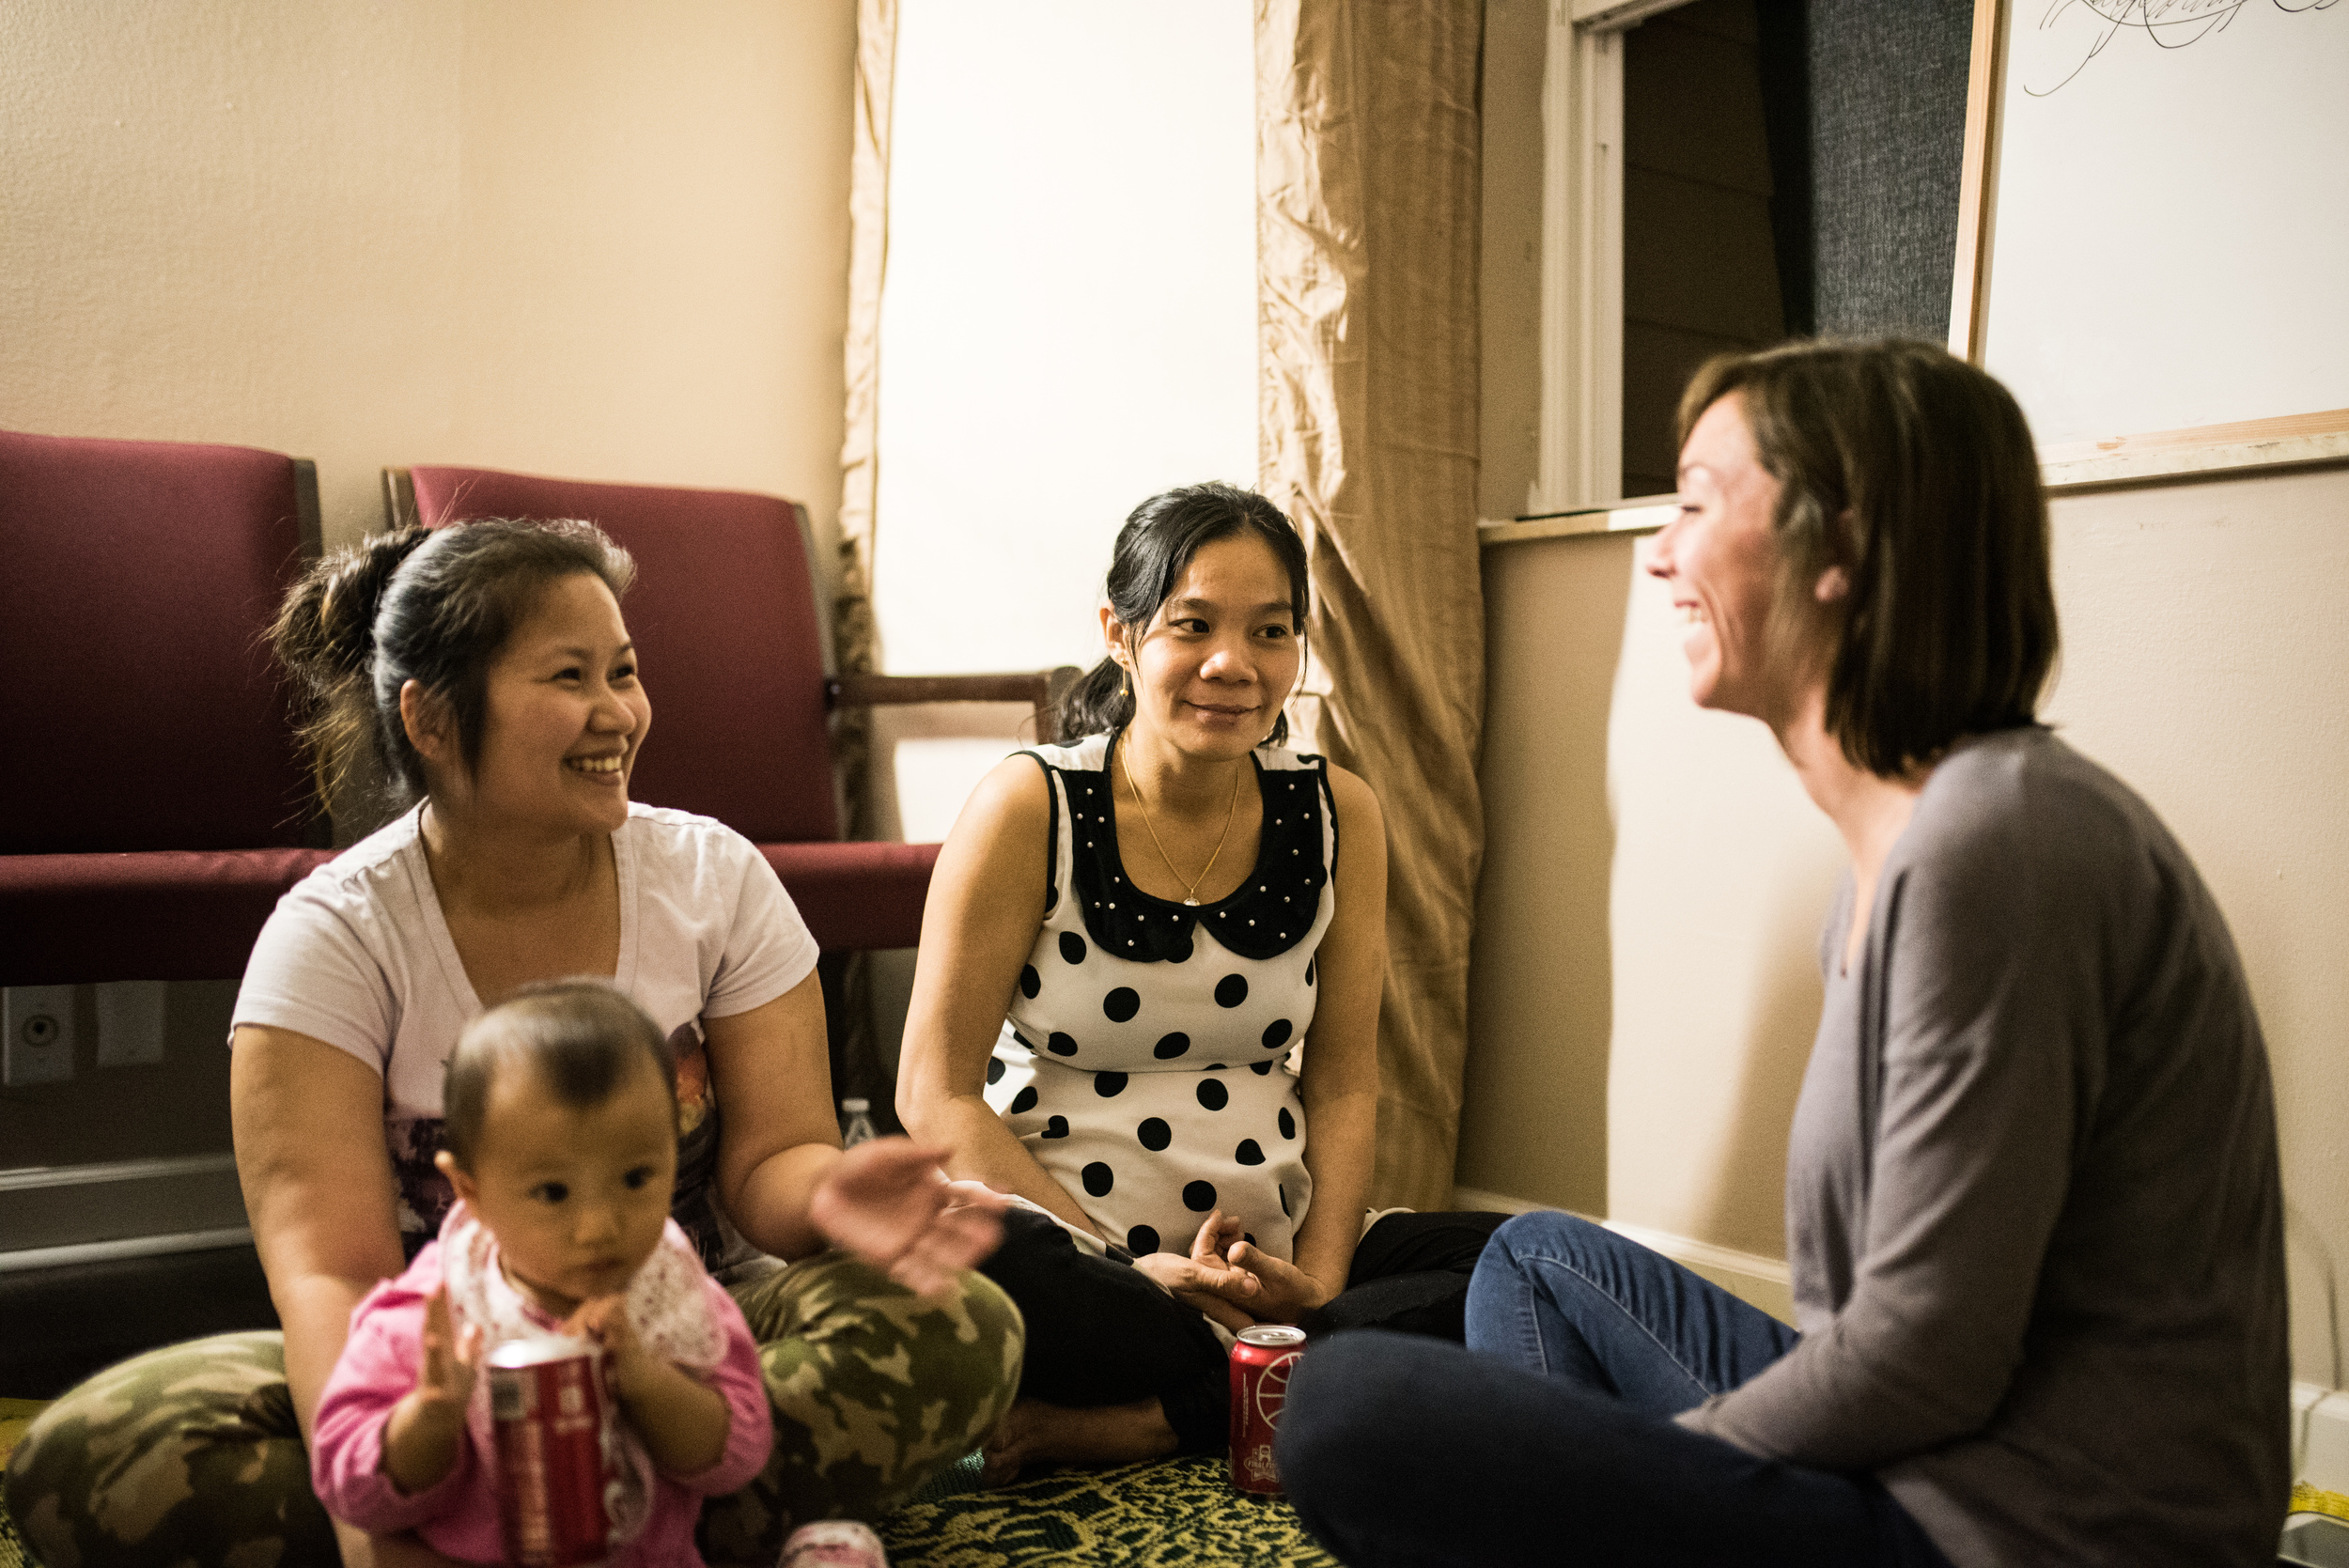 Within our Community Development curriculum at the Institute for G.O.D. we offer a Maternal Health emphasis (the program in which Leah Sherrod is currently enrolled). Every student in the program is required to offer childbirth education and doula services to a refugee mother in the Nashville area.